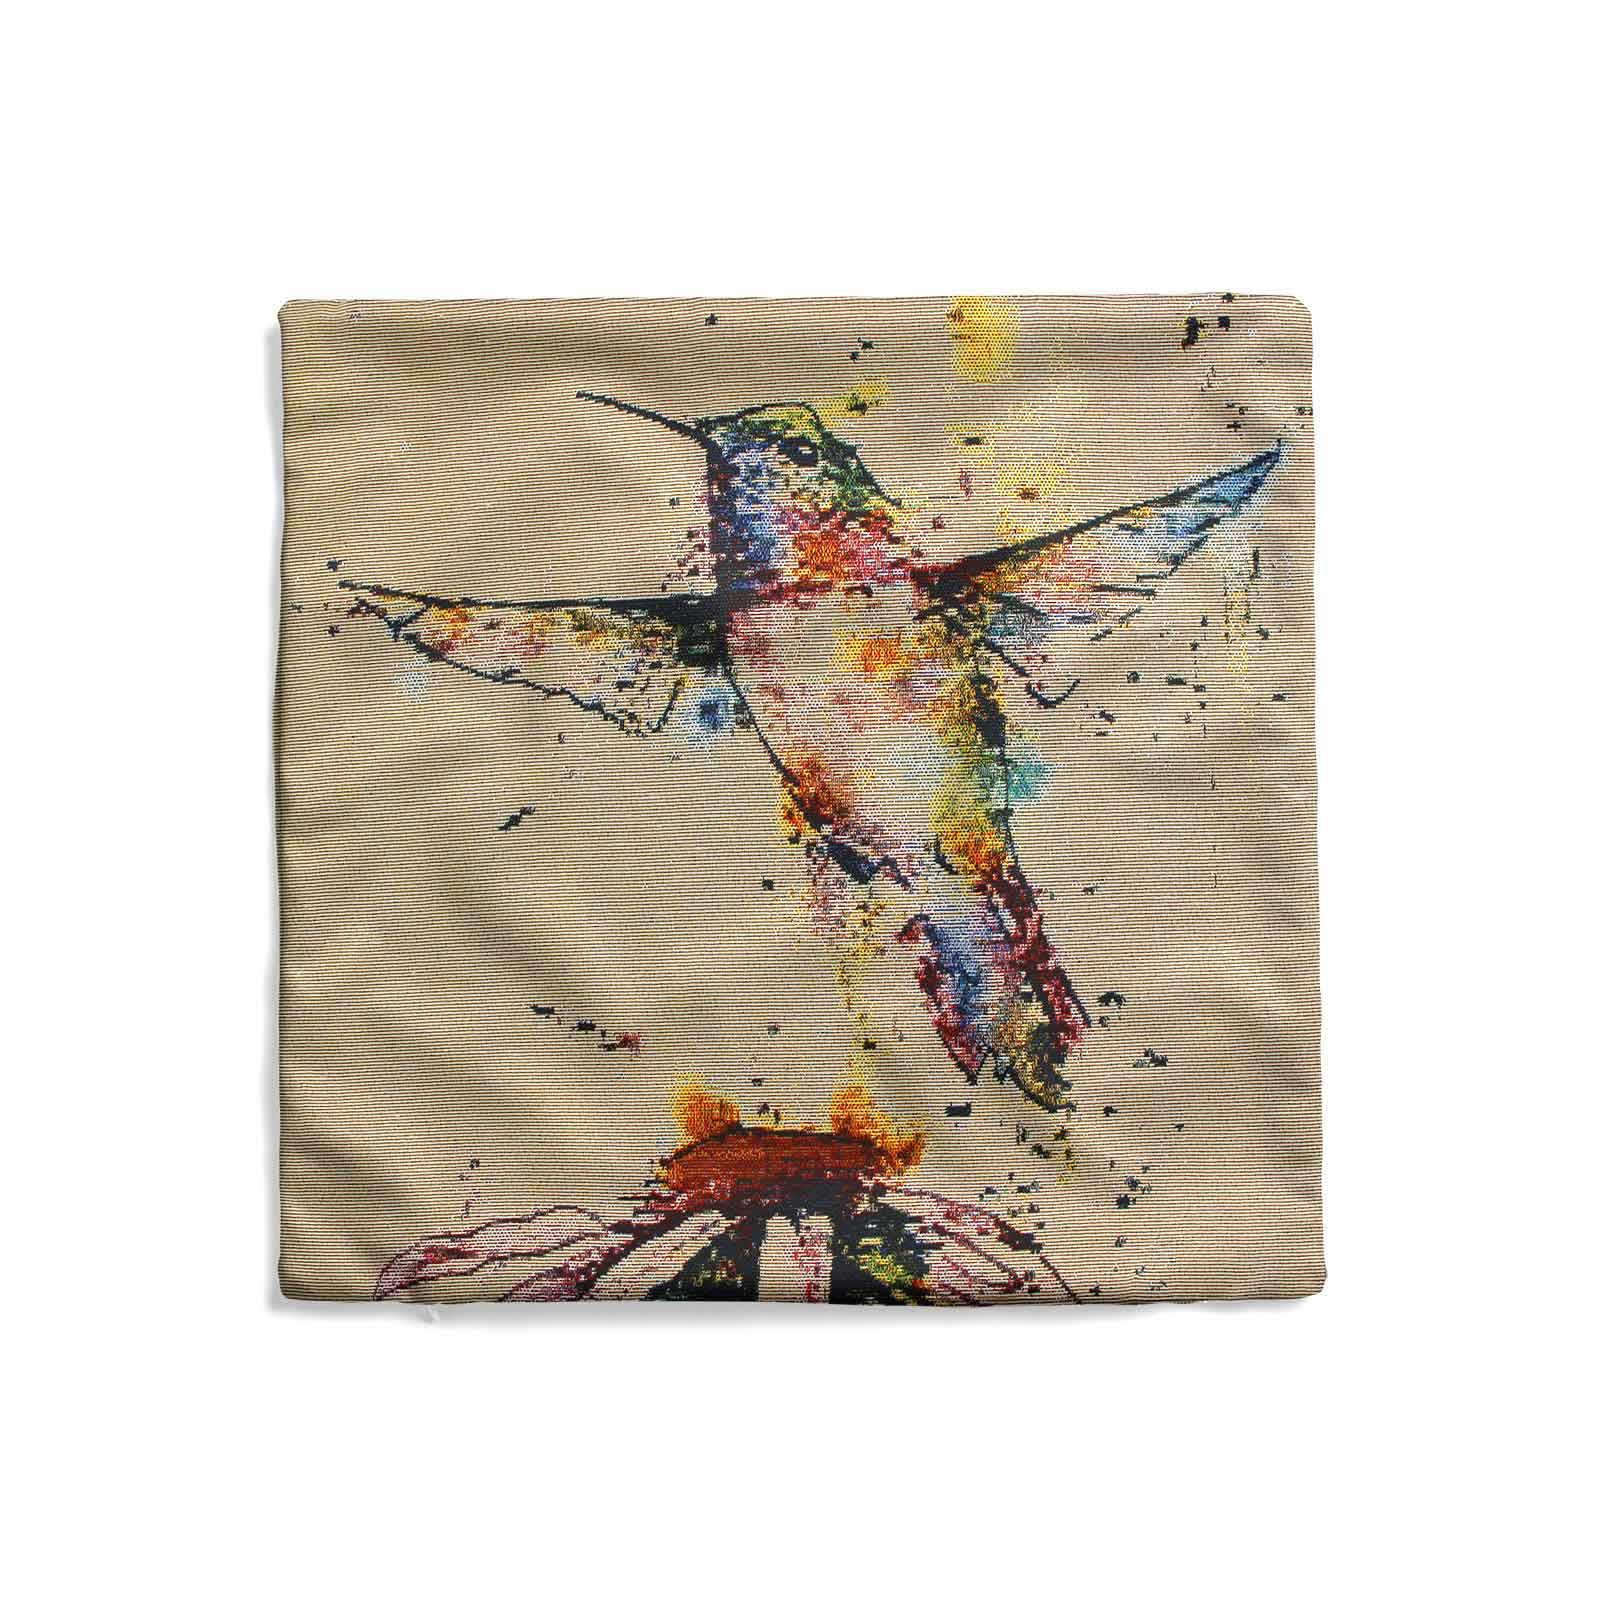 Tapestry-Cushion-Covers-Vintage-Pillow-Cover-Collection-18-034-45cm-Filled-Cushions thumbnail 83